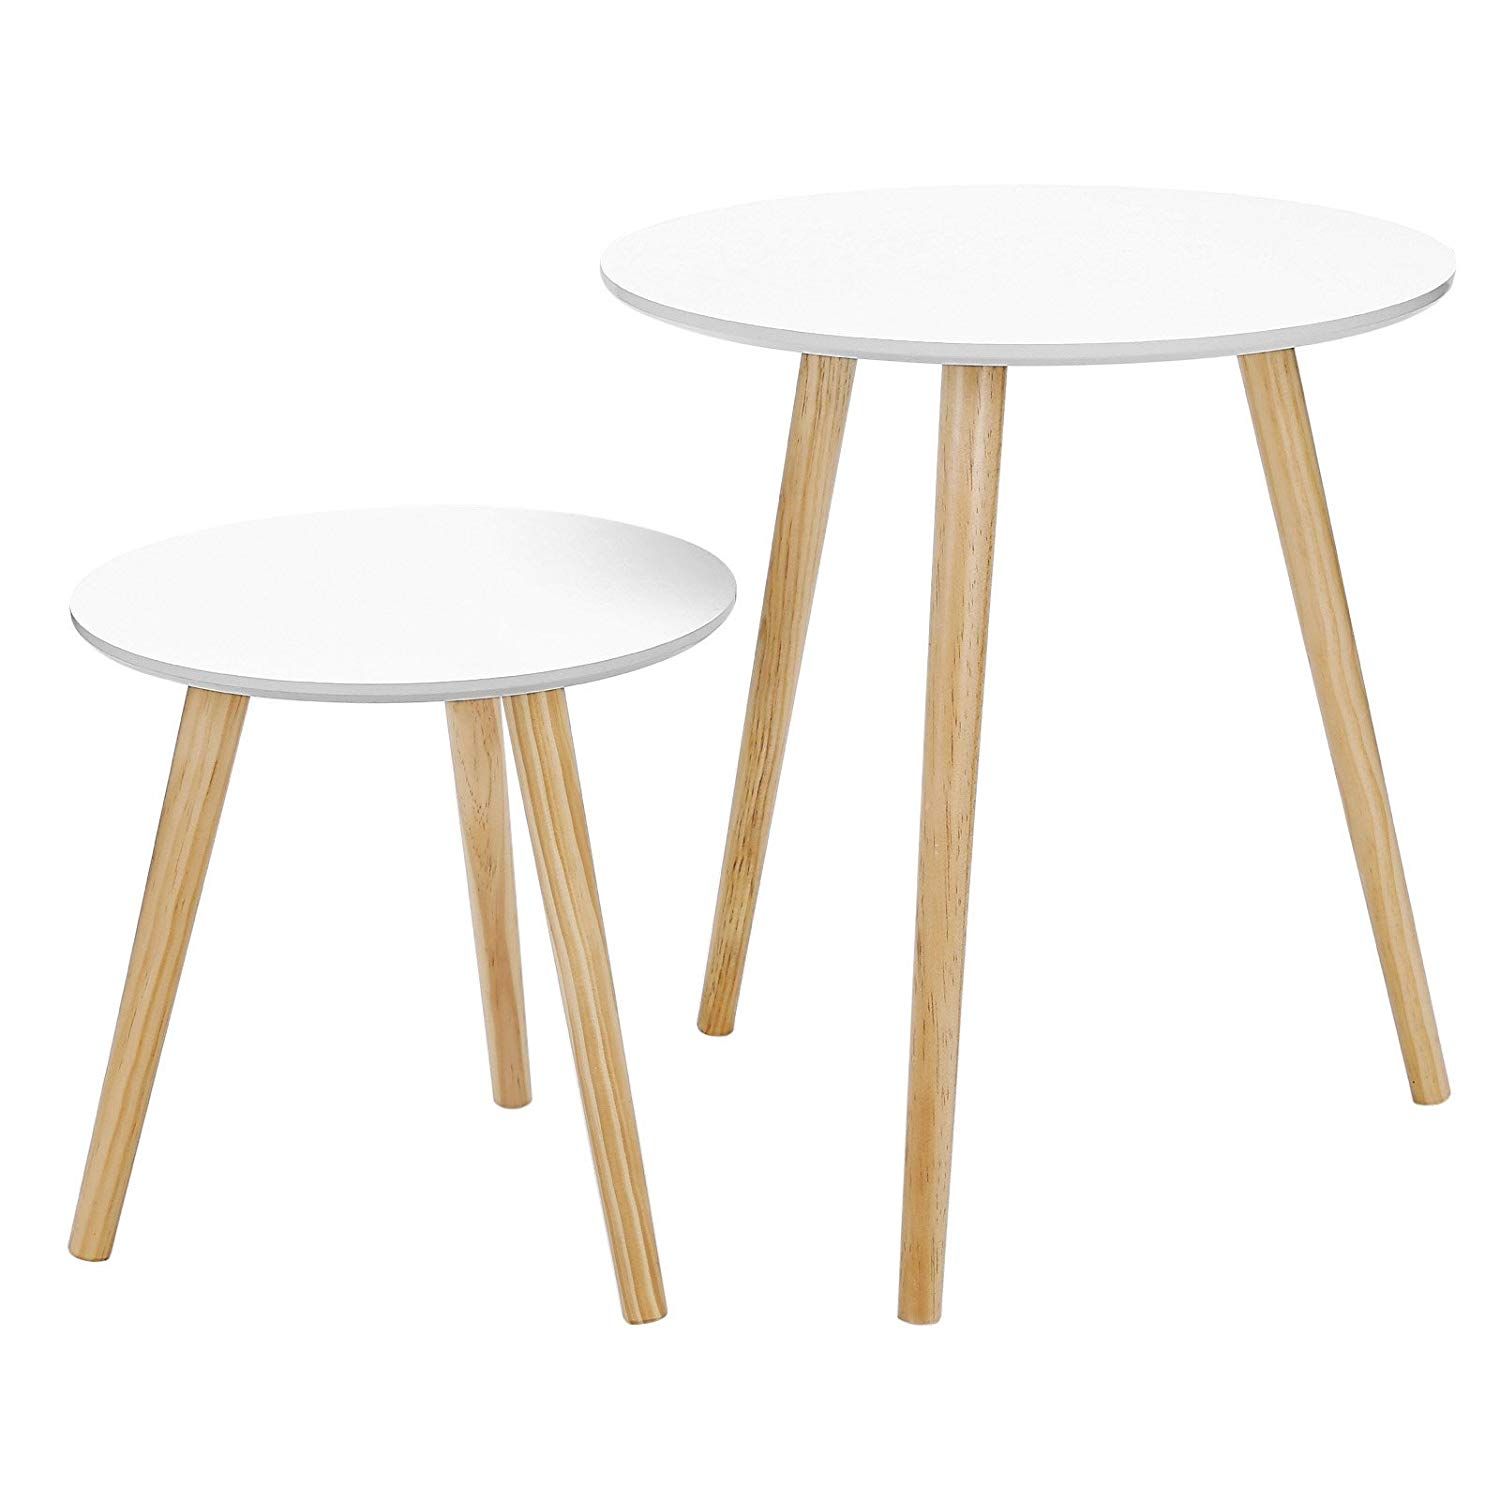 songmics nesting tables round coffee end night accent table with screw legs stand modern mini multi purpose daffodil series furniture for living room bedroom kid pottery sectional